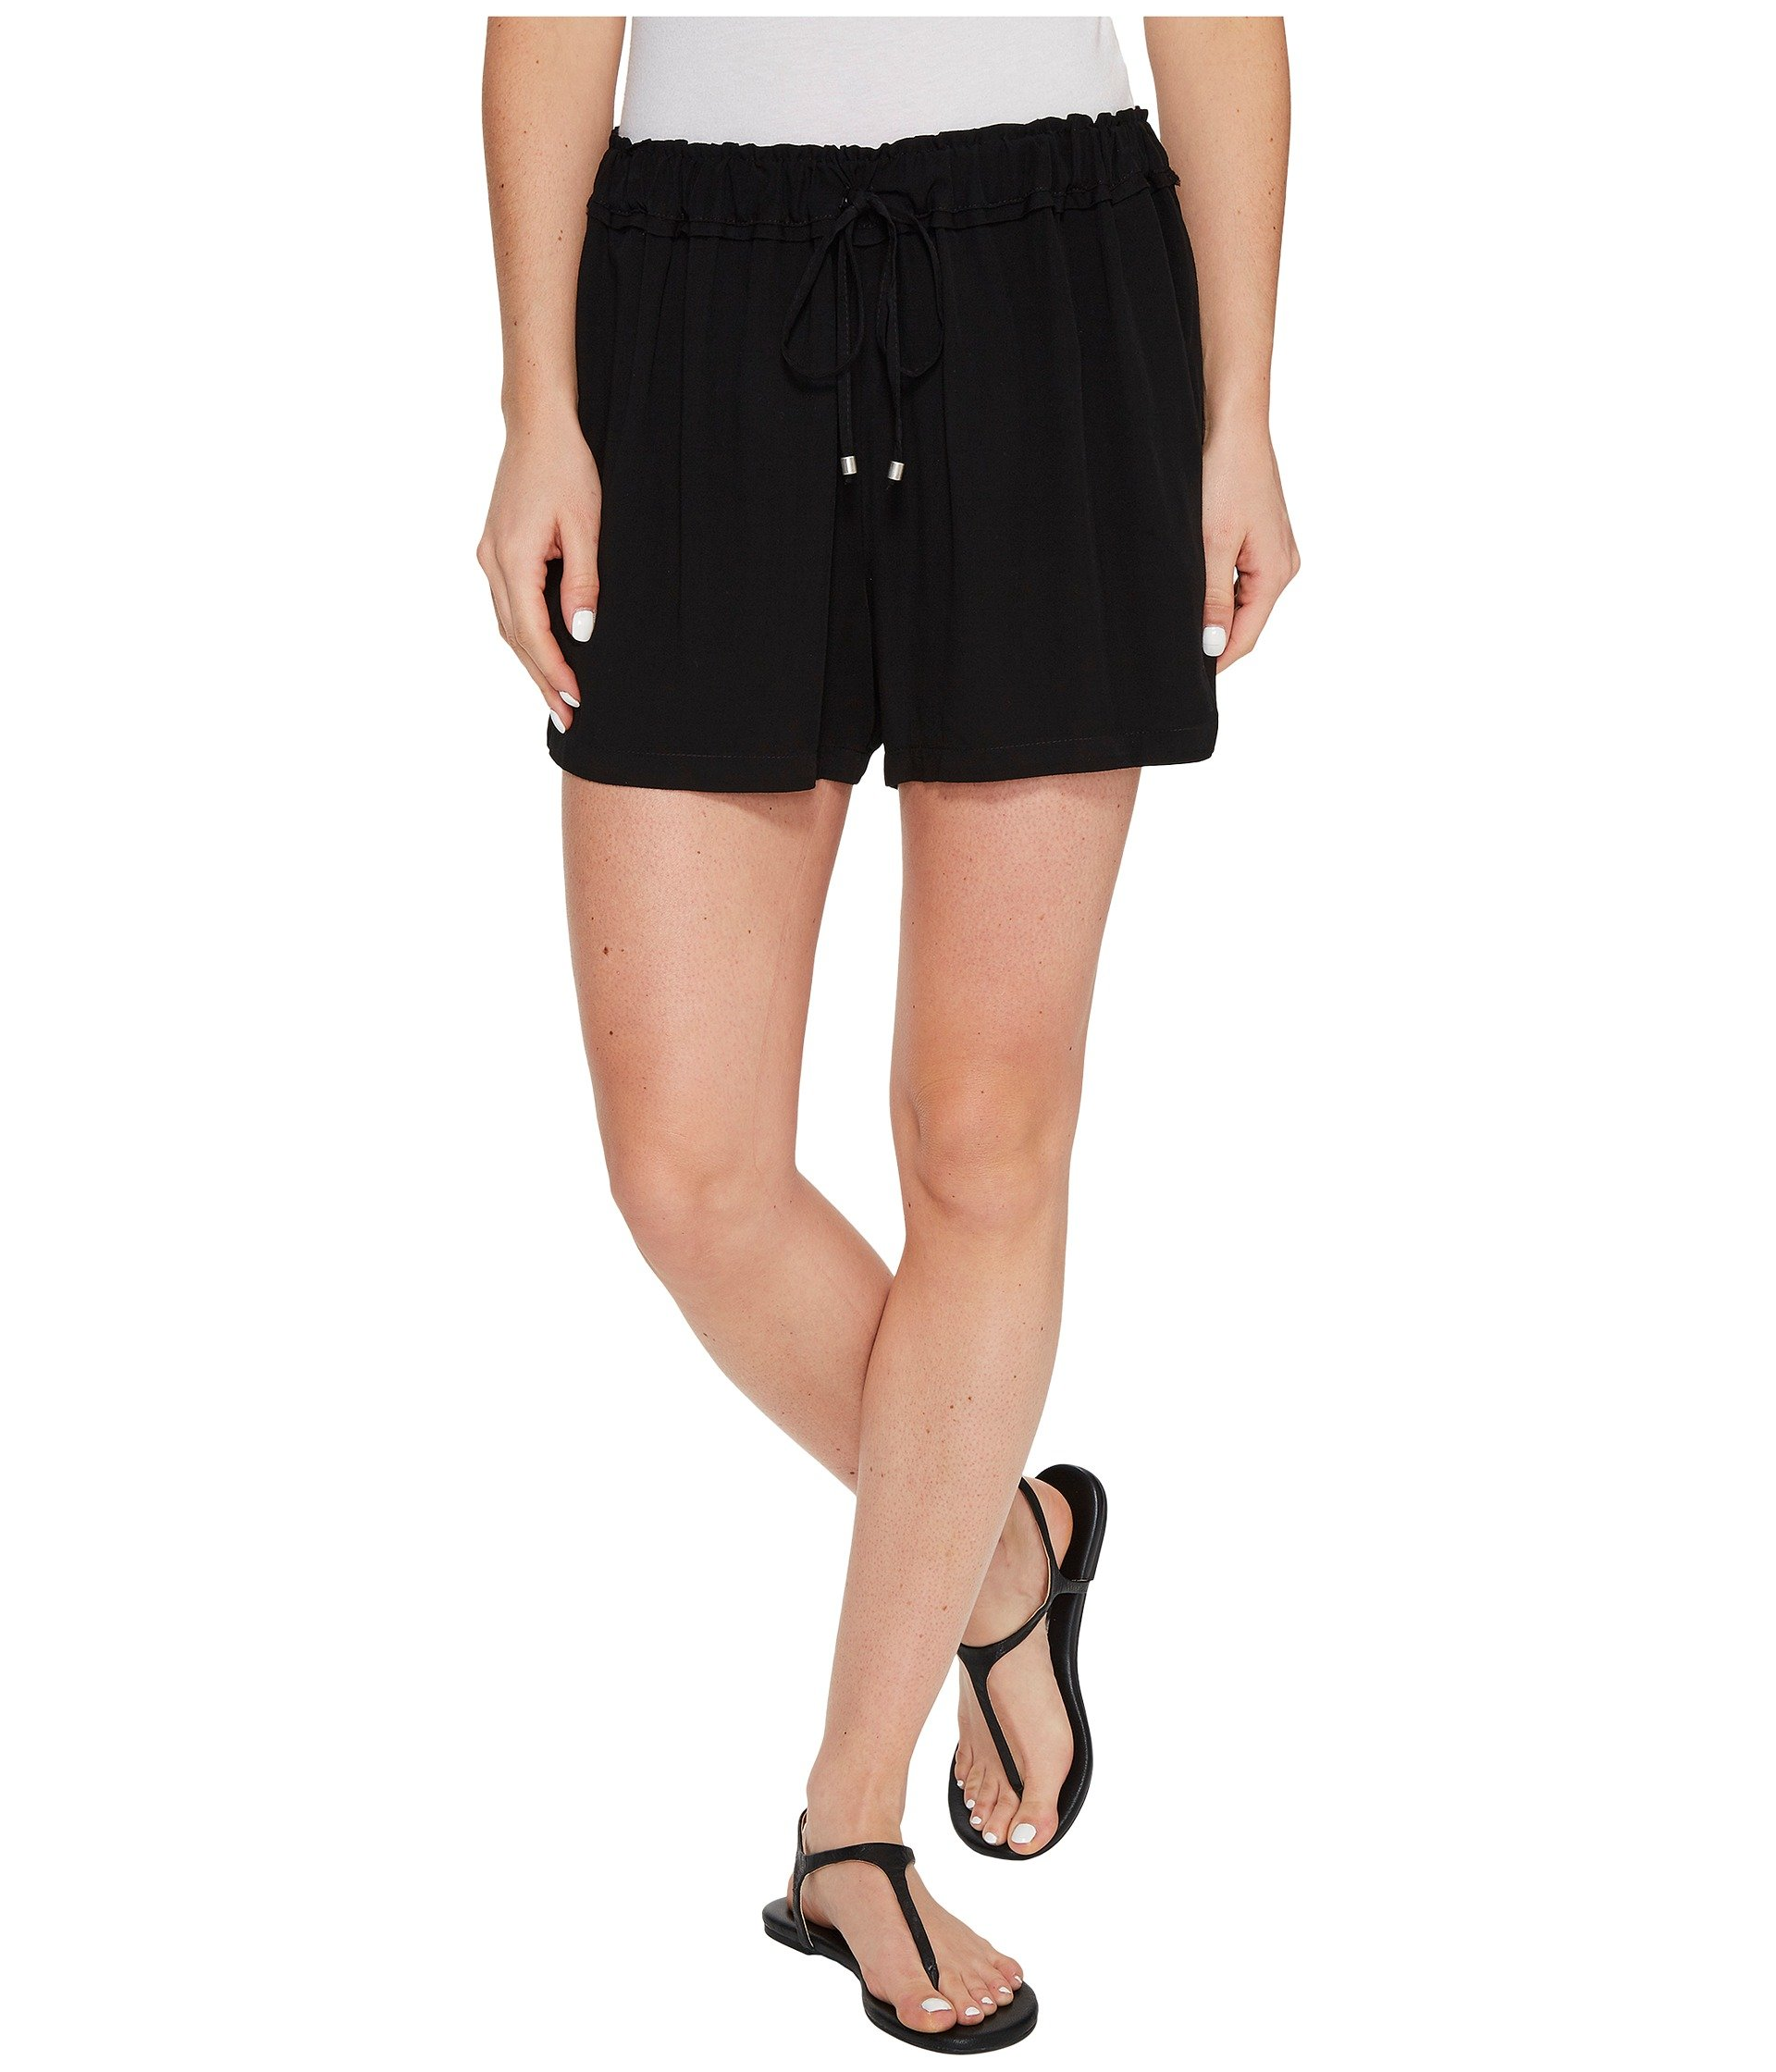 SPLENDID Ruffle Waist Shorts, Black